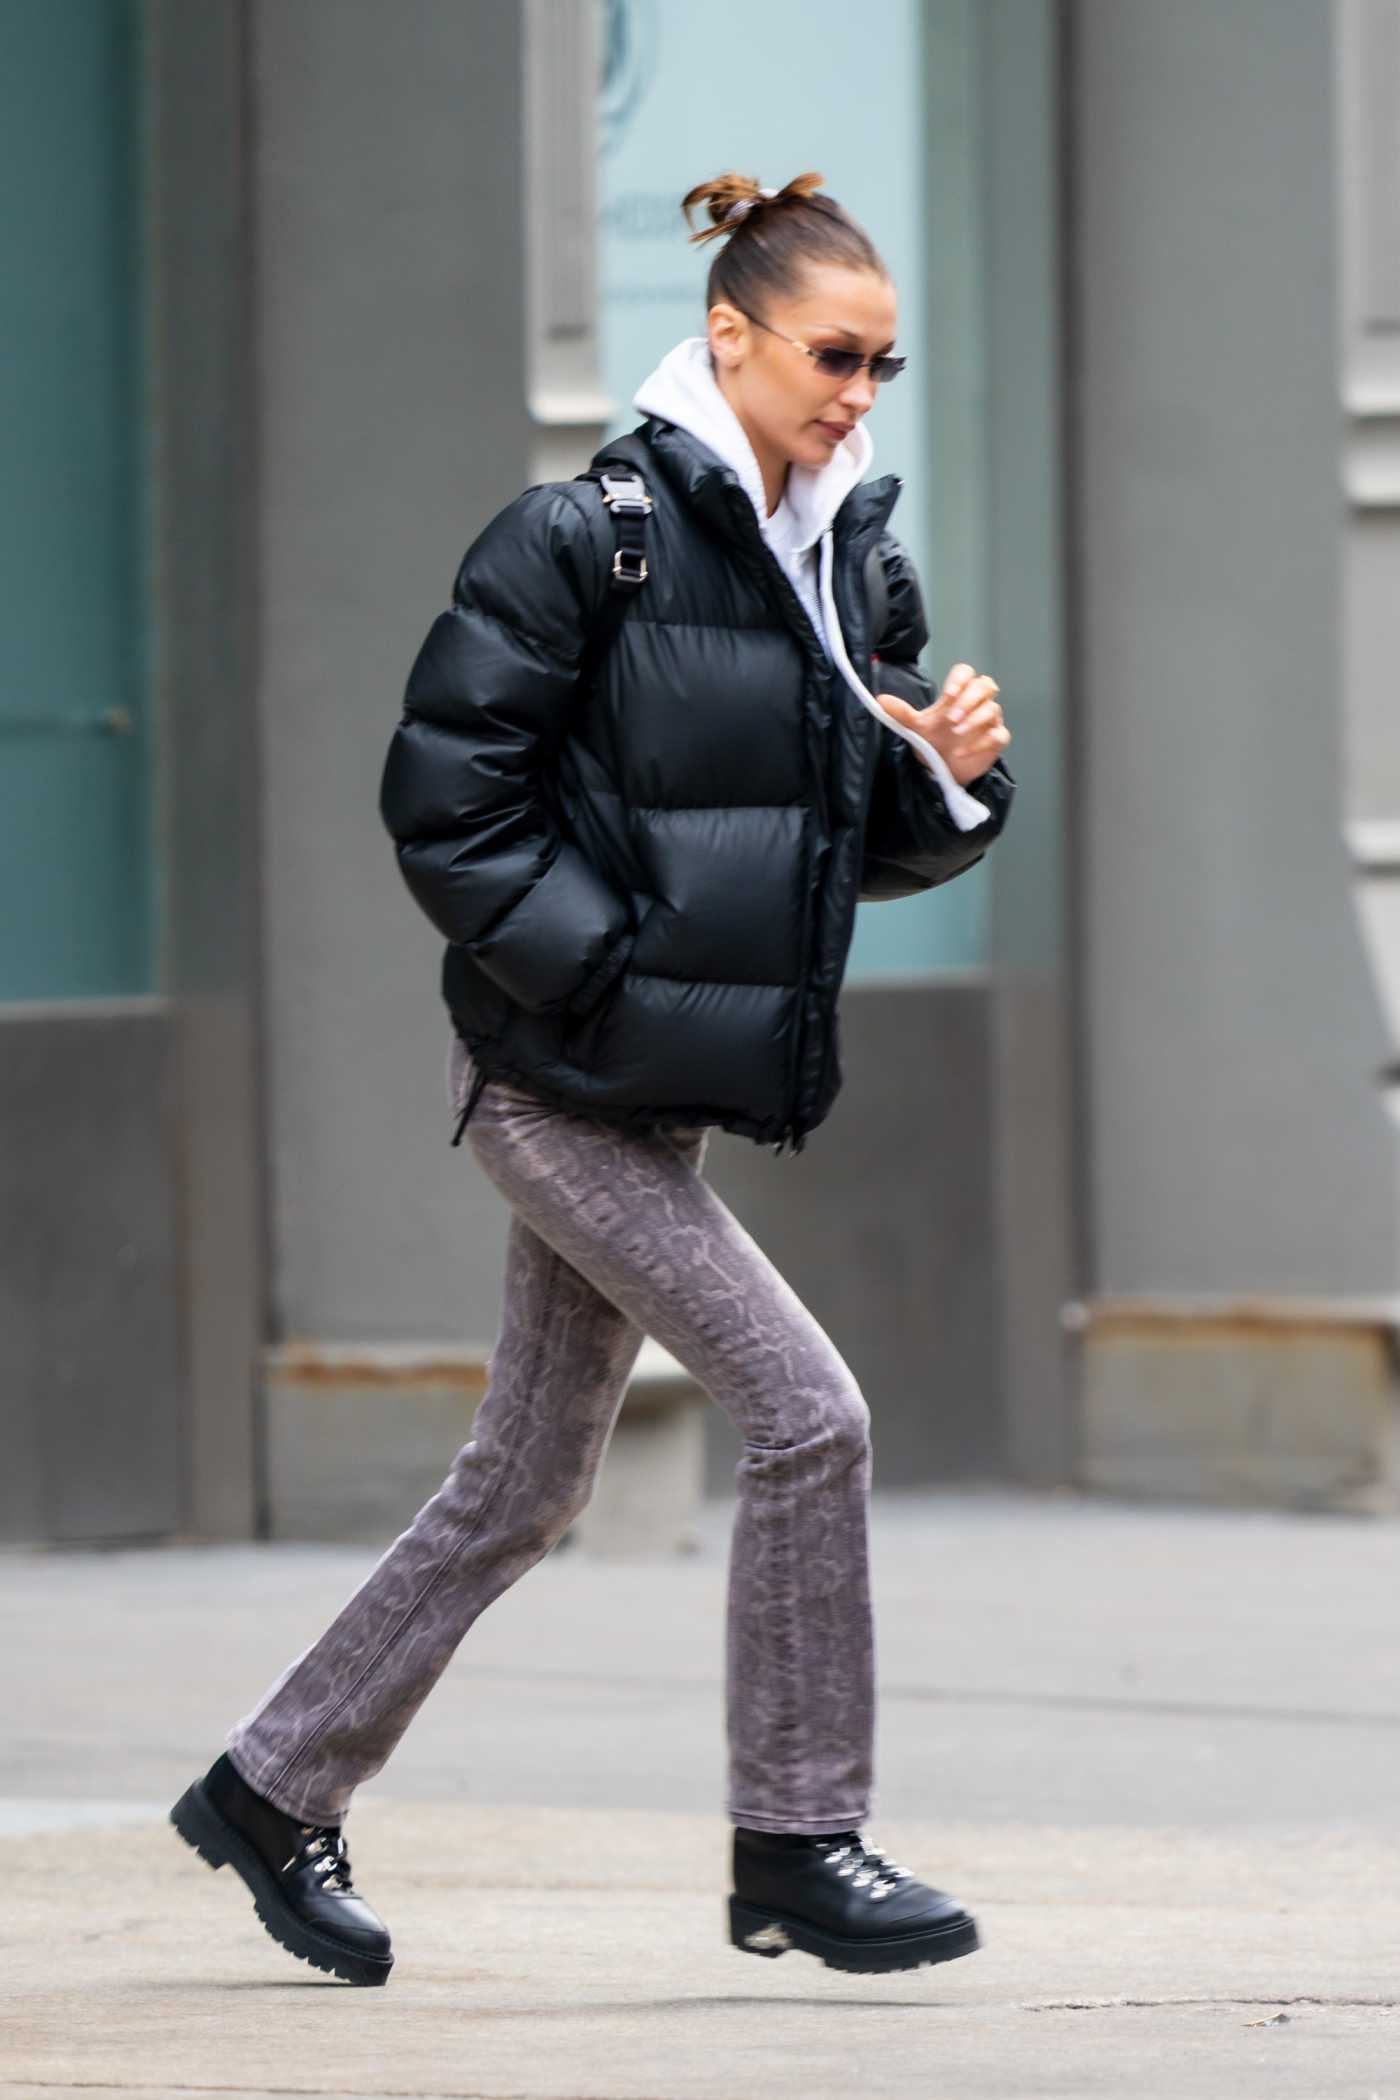 Bella Hadid in a Black Puffer Jacket Was Seen Out in New York City 01/31/2020